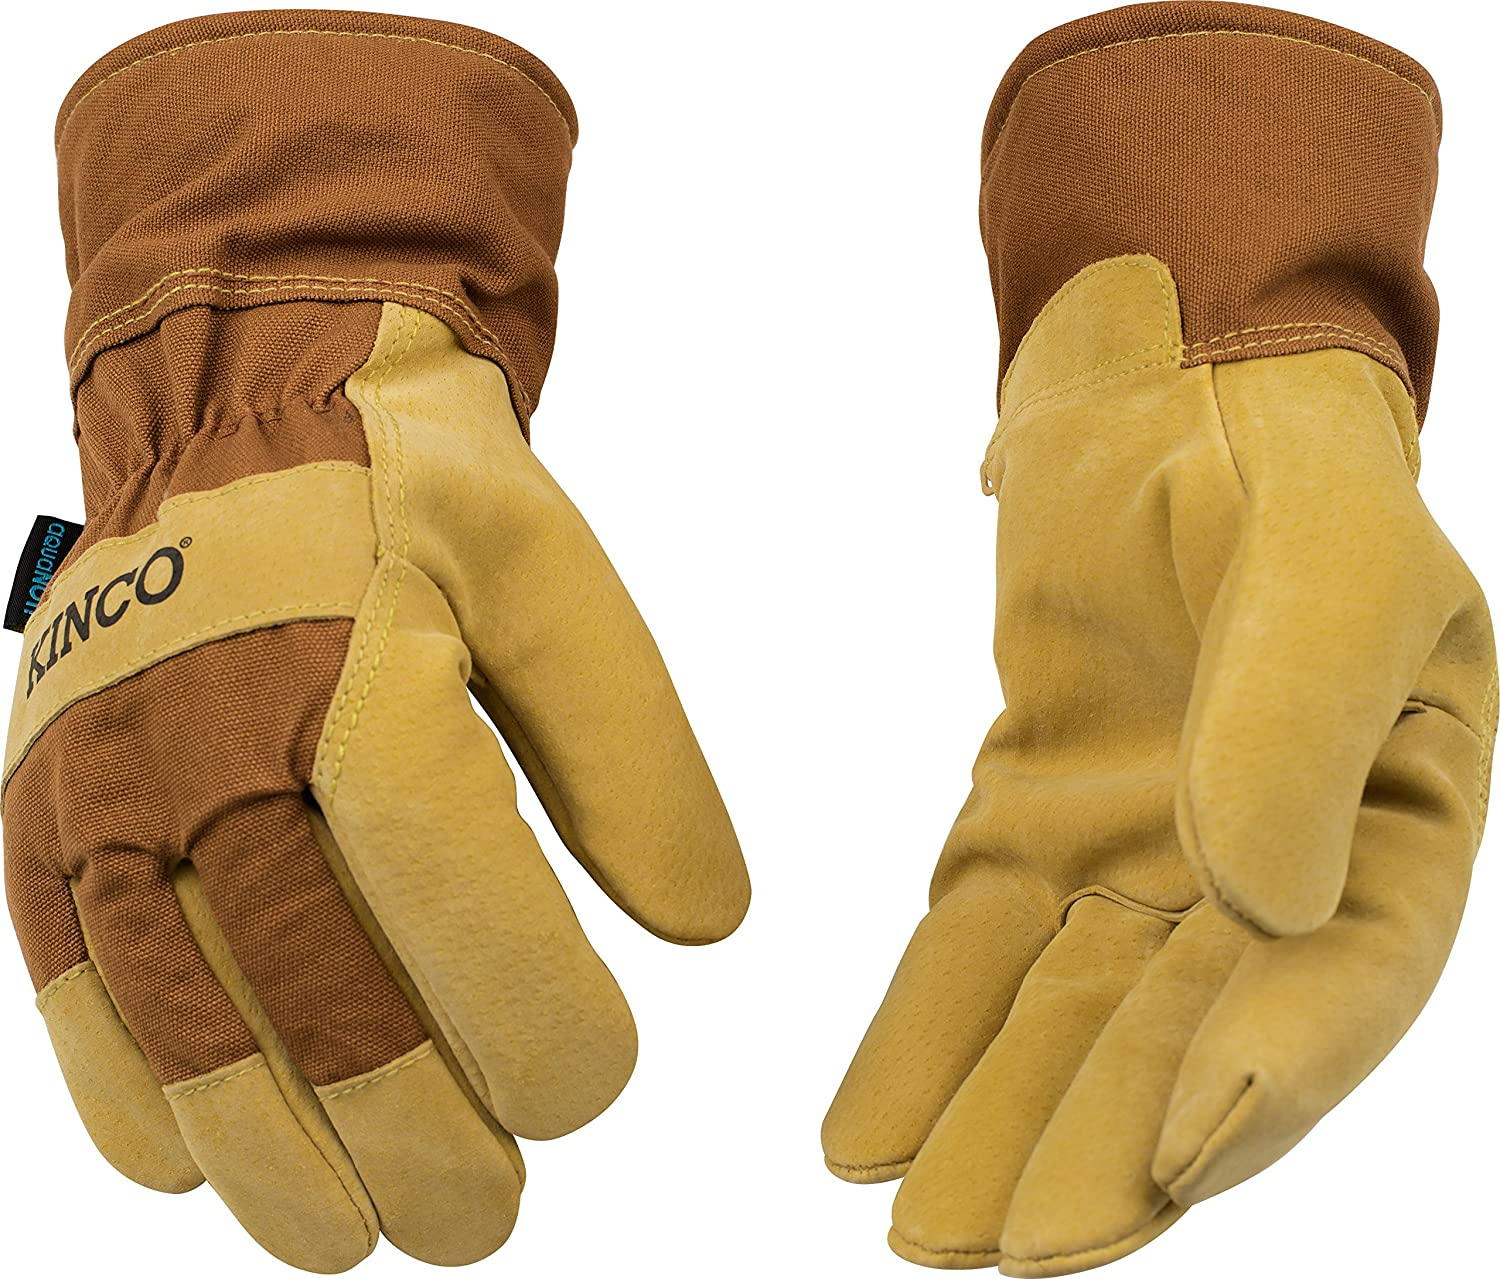 Brown duck fabric back /& safety cuff Kinco 1958-M-1 Suede pigskin Aquanot waterproof insert Size: M Lined safety cuff Heatkeep thermal lining